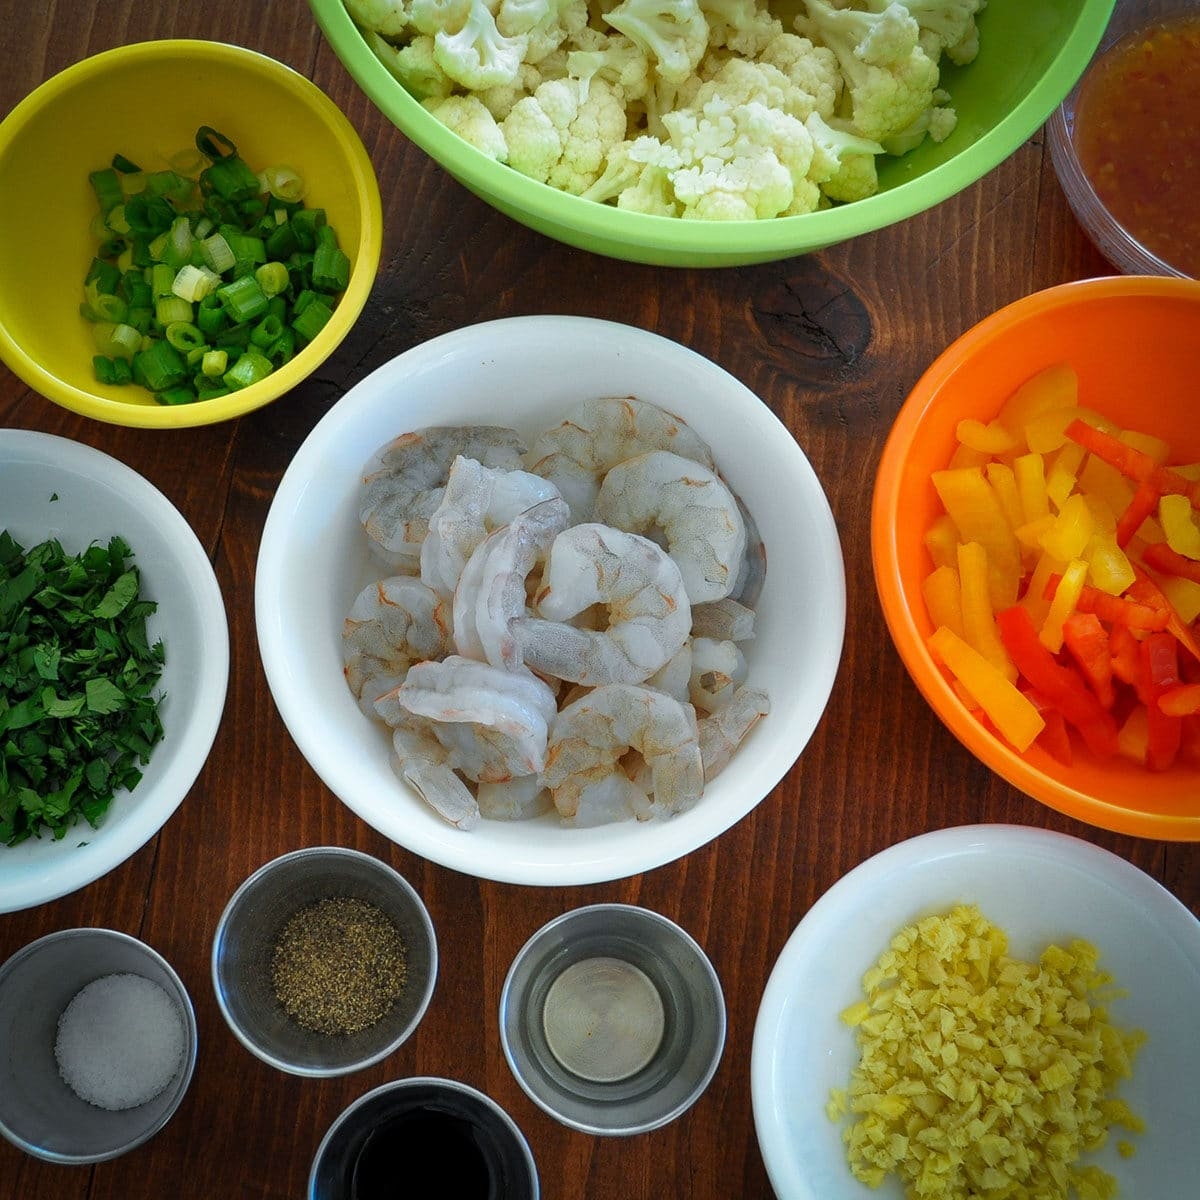 Bowls with ingredients for shrimp and cauliflower stir fry